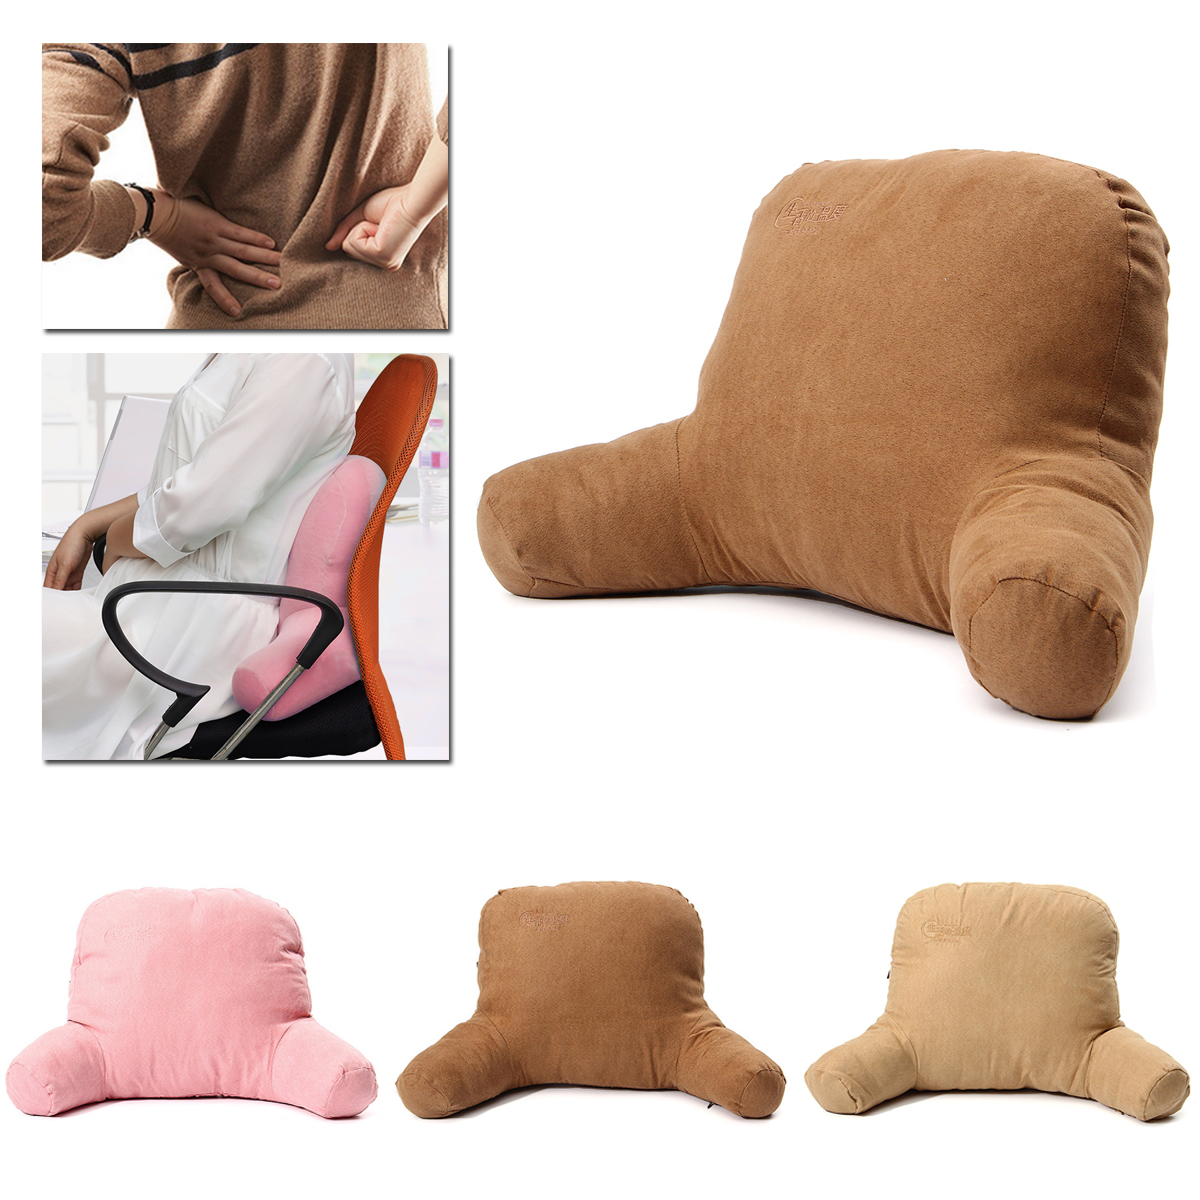 Back Pillow Micro Plush Back Support Arms Bed Car Office Rest Comfort Pillow Lounger Cushion,Coffee color